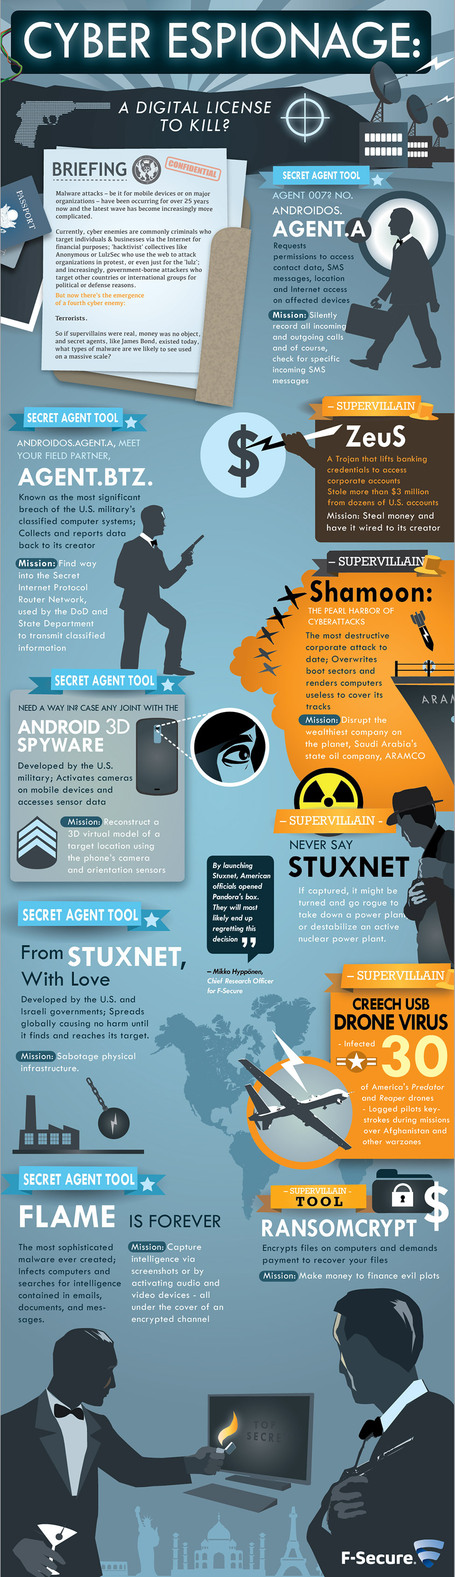 Here's Enough Digital Espionage to Scare James Bond [INFOGRAPHIC] | Criminology and Economic Theory | Scoop.it